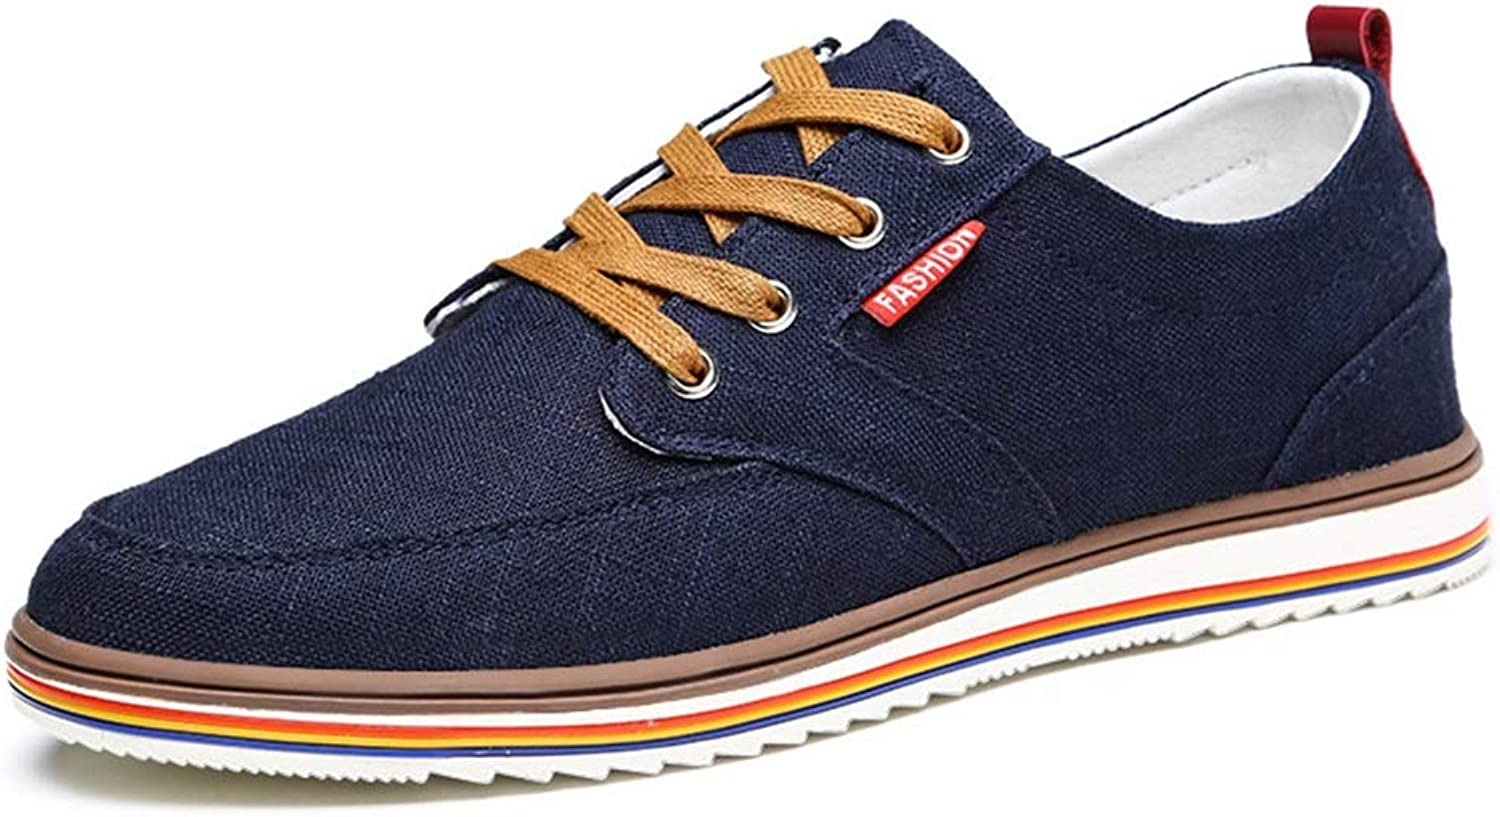 Easy Go Shopping Athletic shoes For Men Fashion Sports shoes Lace Up Style Linen Light And Soft Round Toe driving shoes for men Cricket shoes (color   Darkbluee, Size   10 UK)